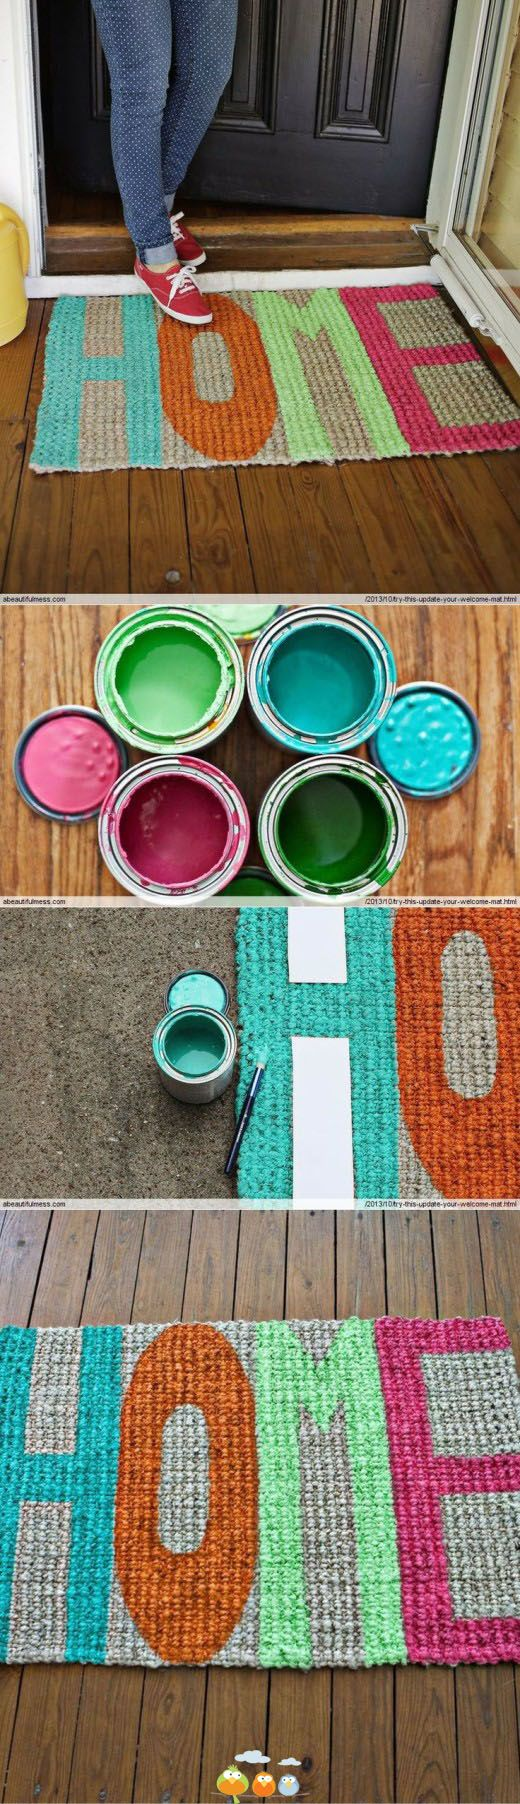 DIY Paint any design on a burlap rug